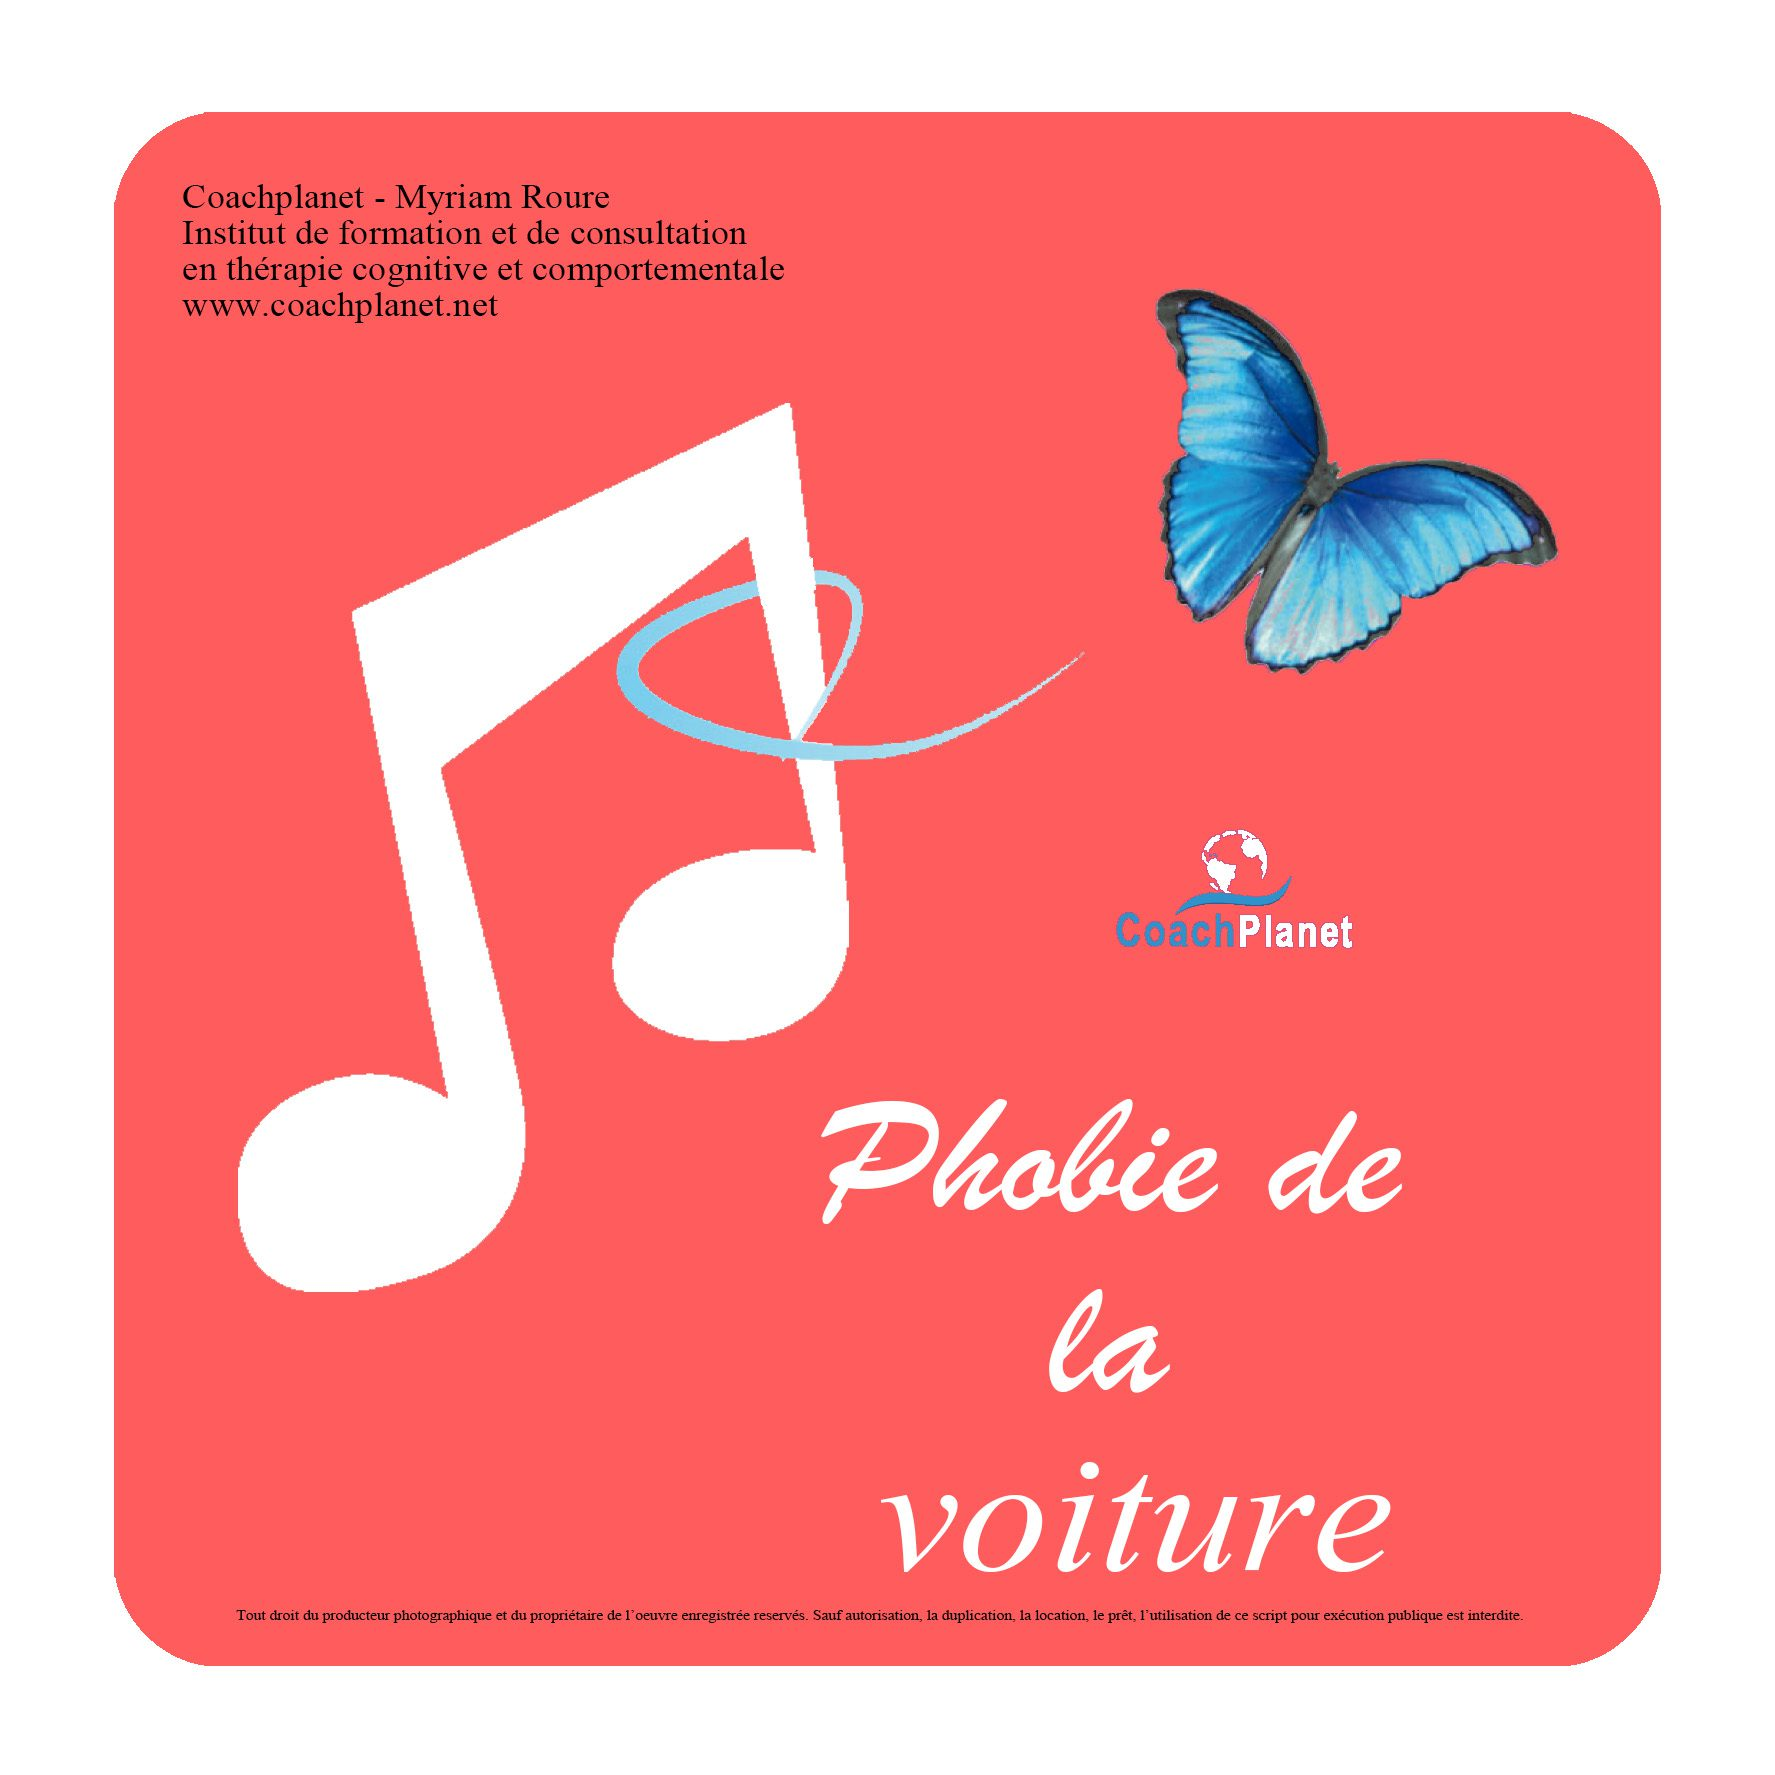 mp3-phobie-de-la-voiture